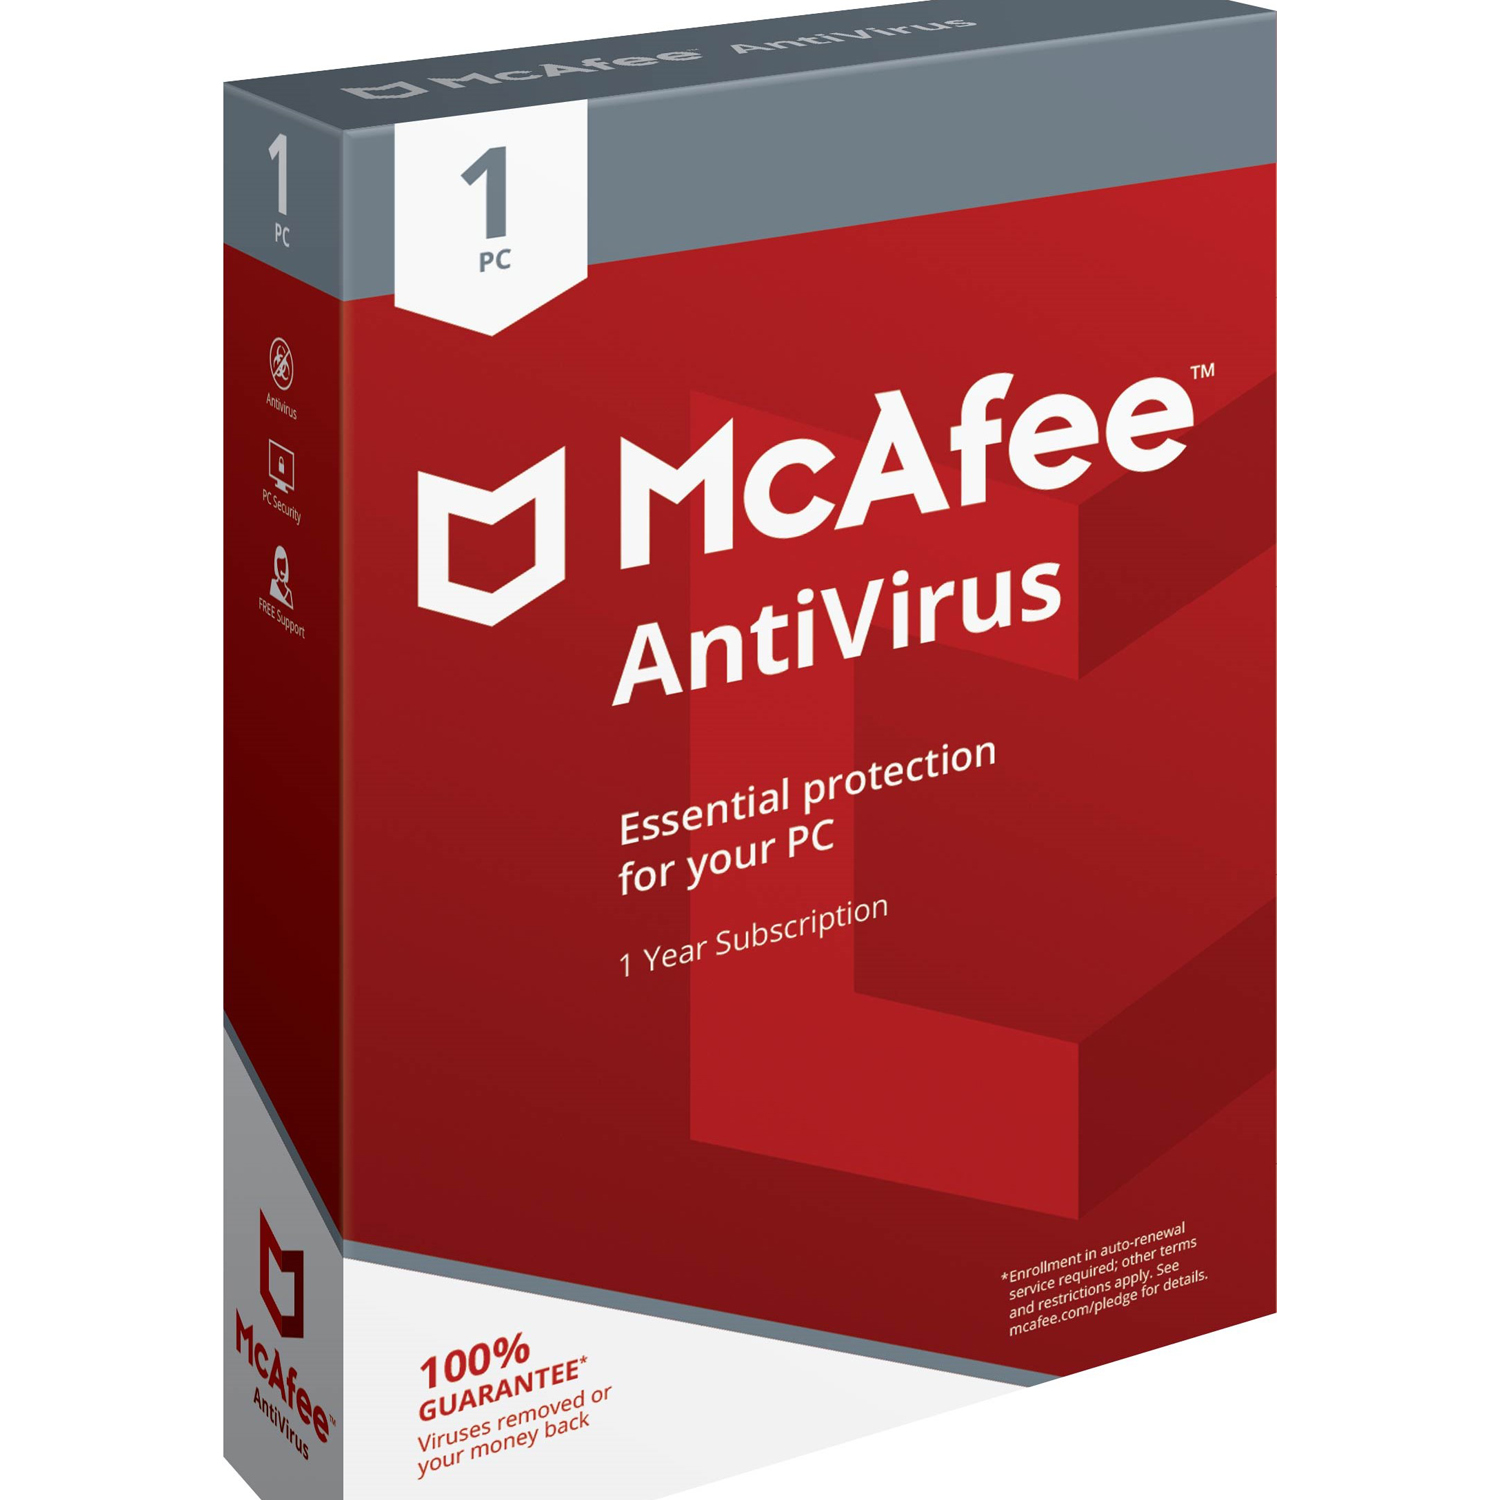 McAfee AntiVirus 1 PC